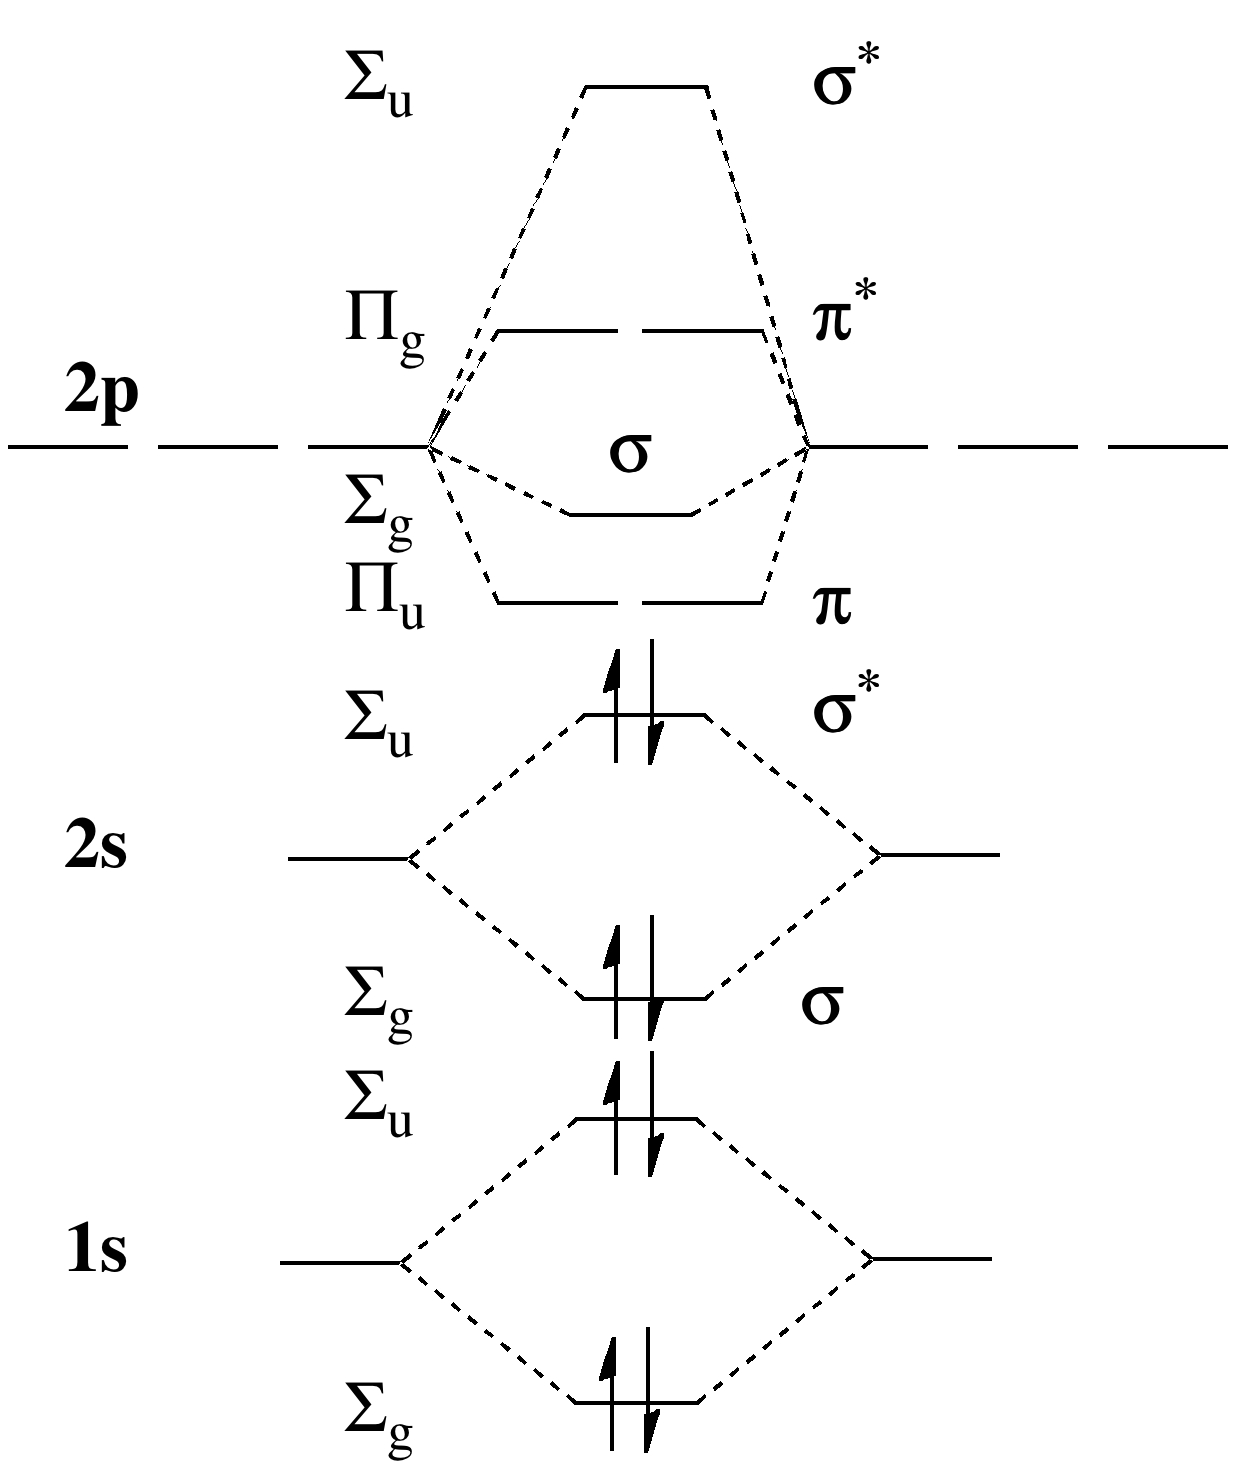 Using The Molecular Orbital Theory Why Does A Be2 Wiring Diagram